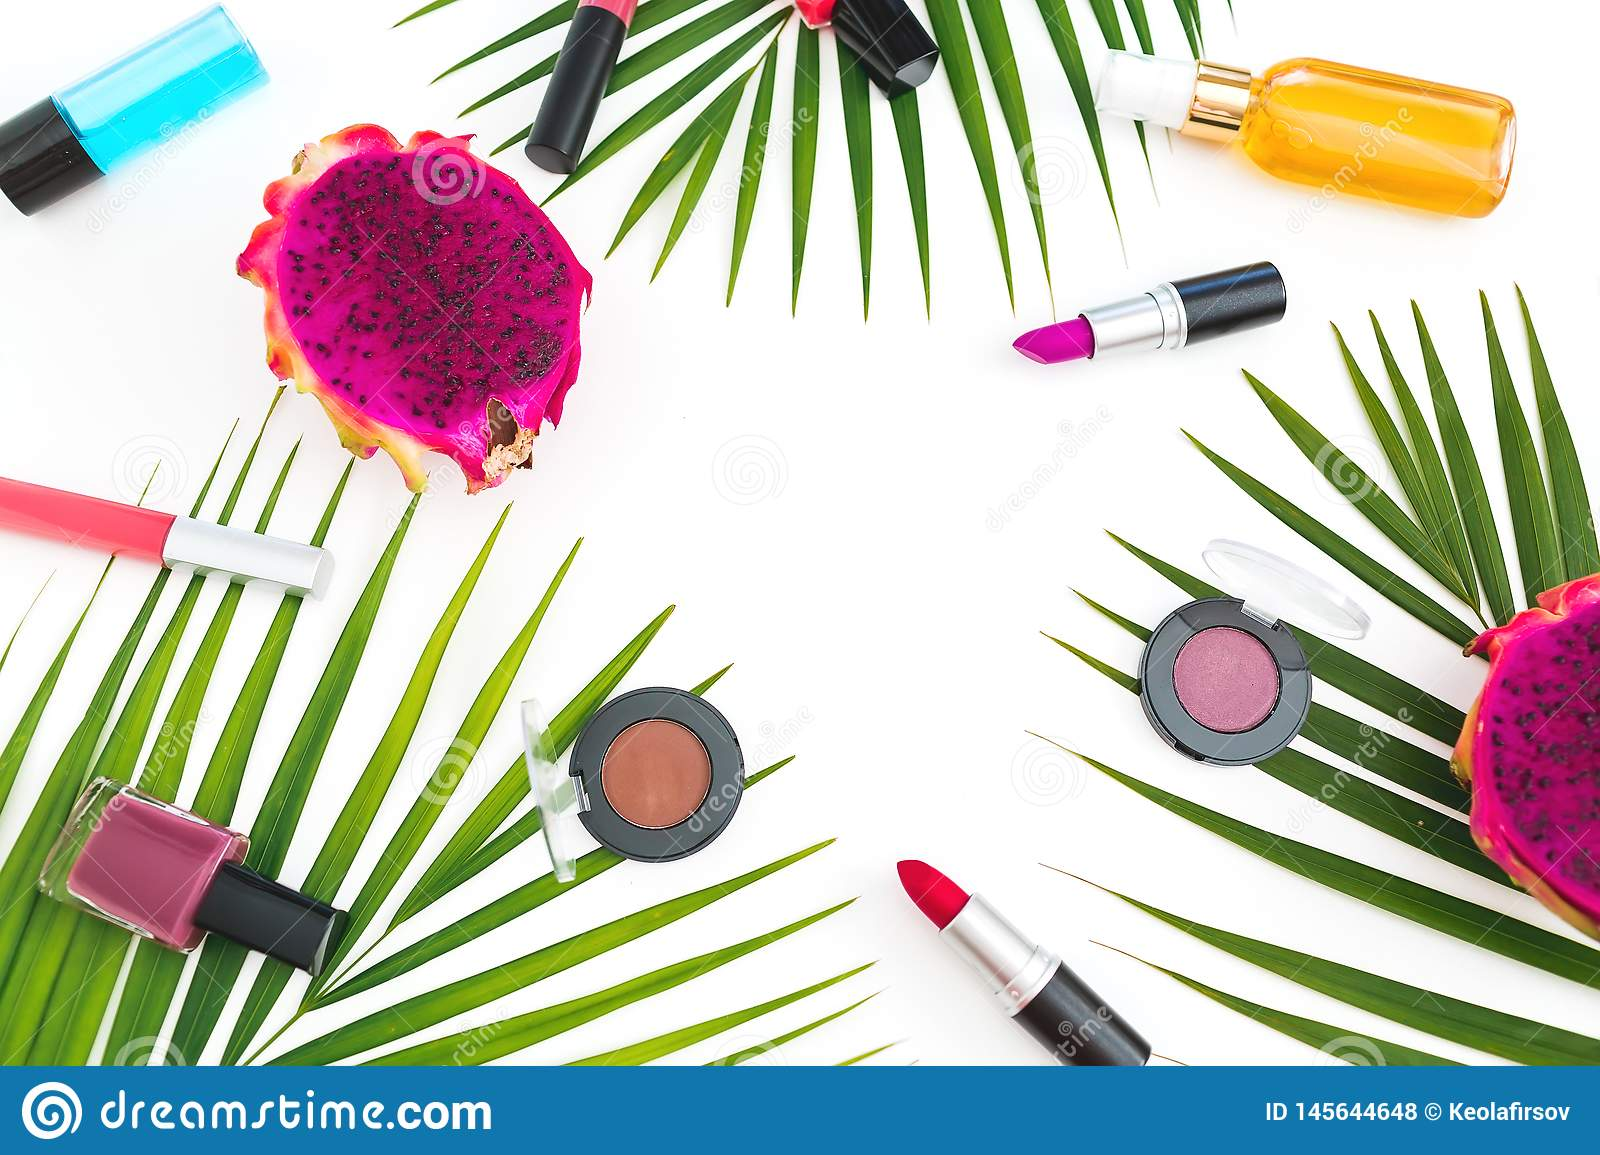 Beauty composition with dragon fruits, palm leaves and cosmetics on white background.